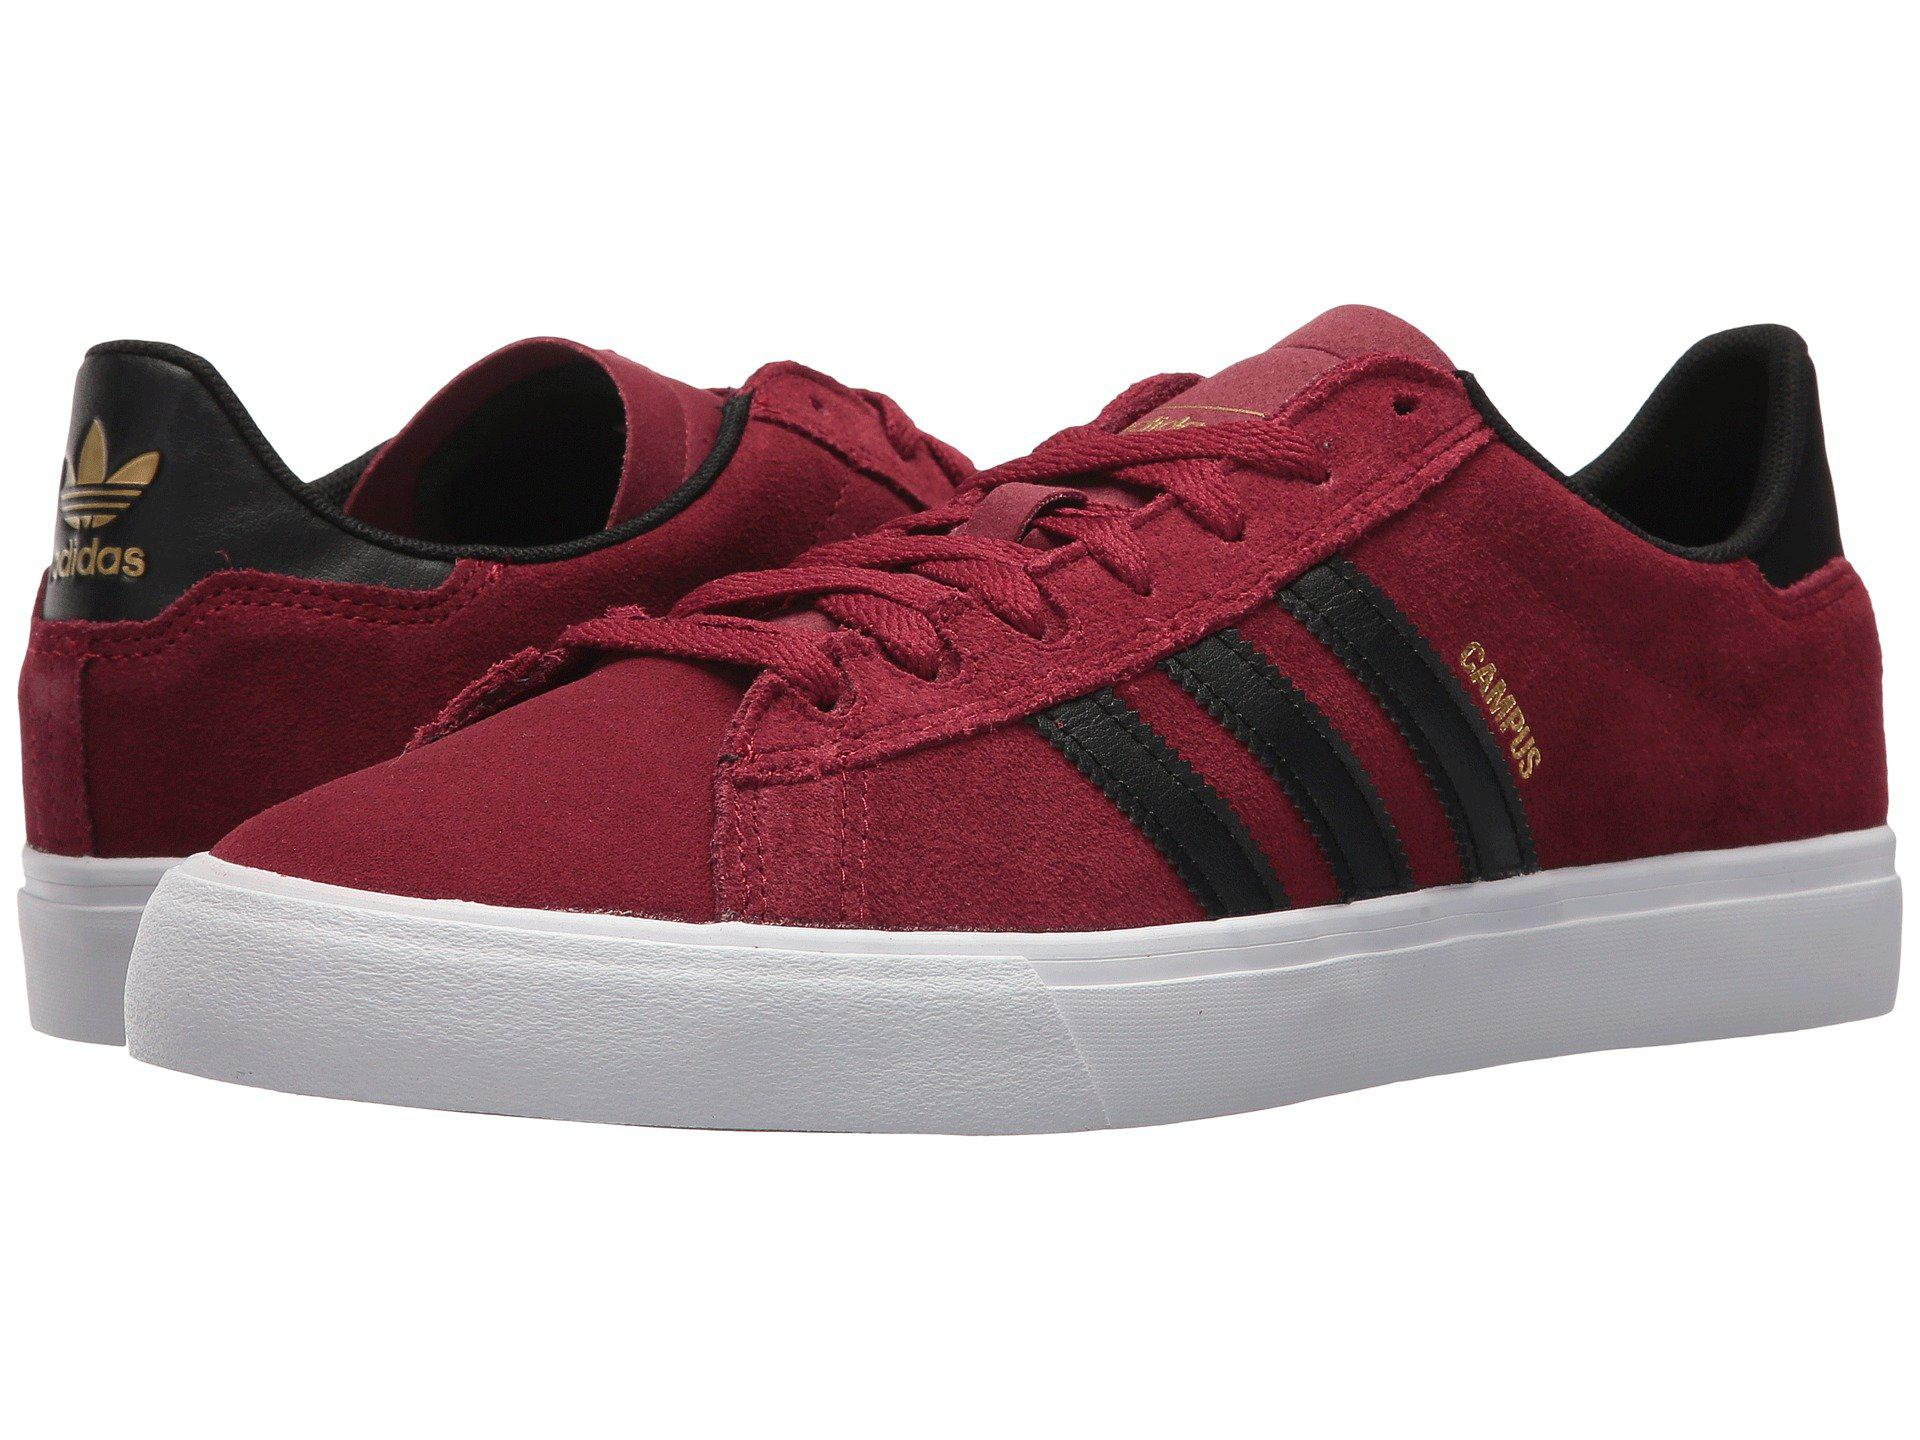 free shipping 9fde1 4d7b3 Lyst - Adidas Originals Campus Vulc Ii in Red for Men